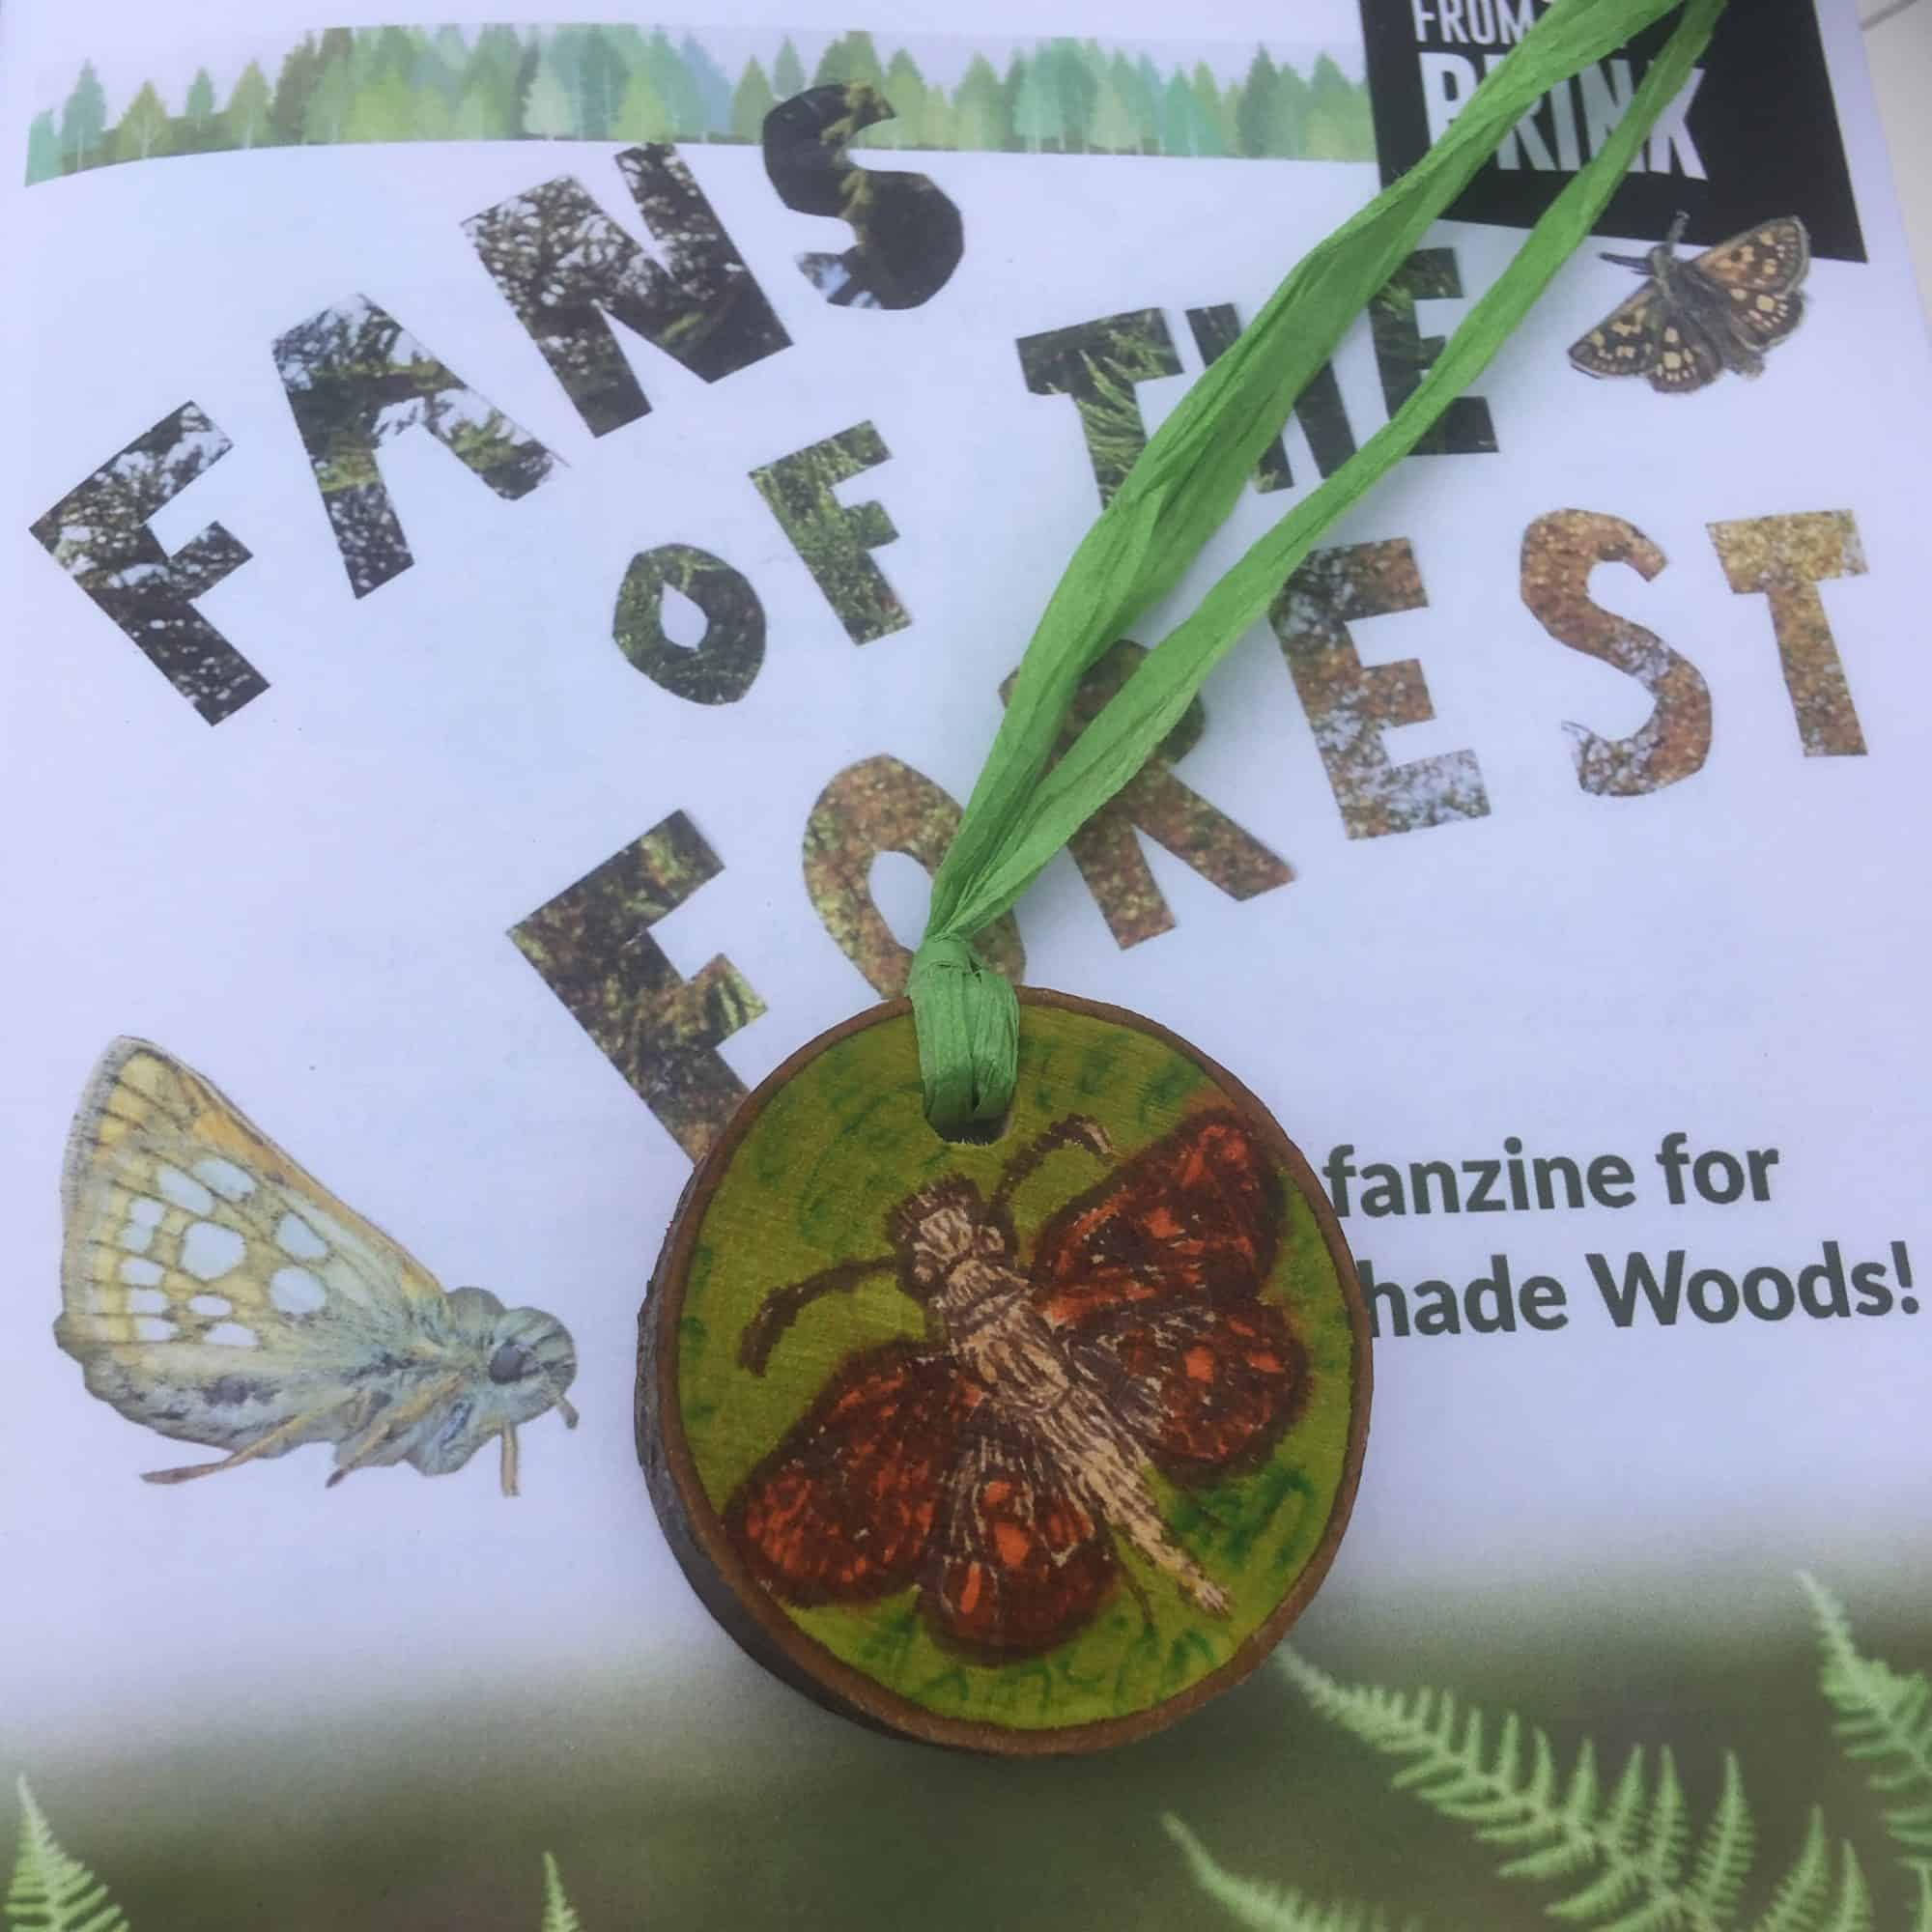 Fans of the Forest